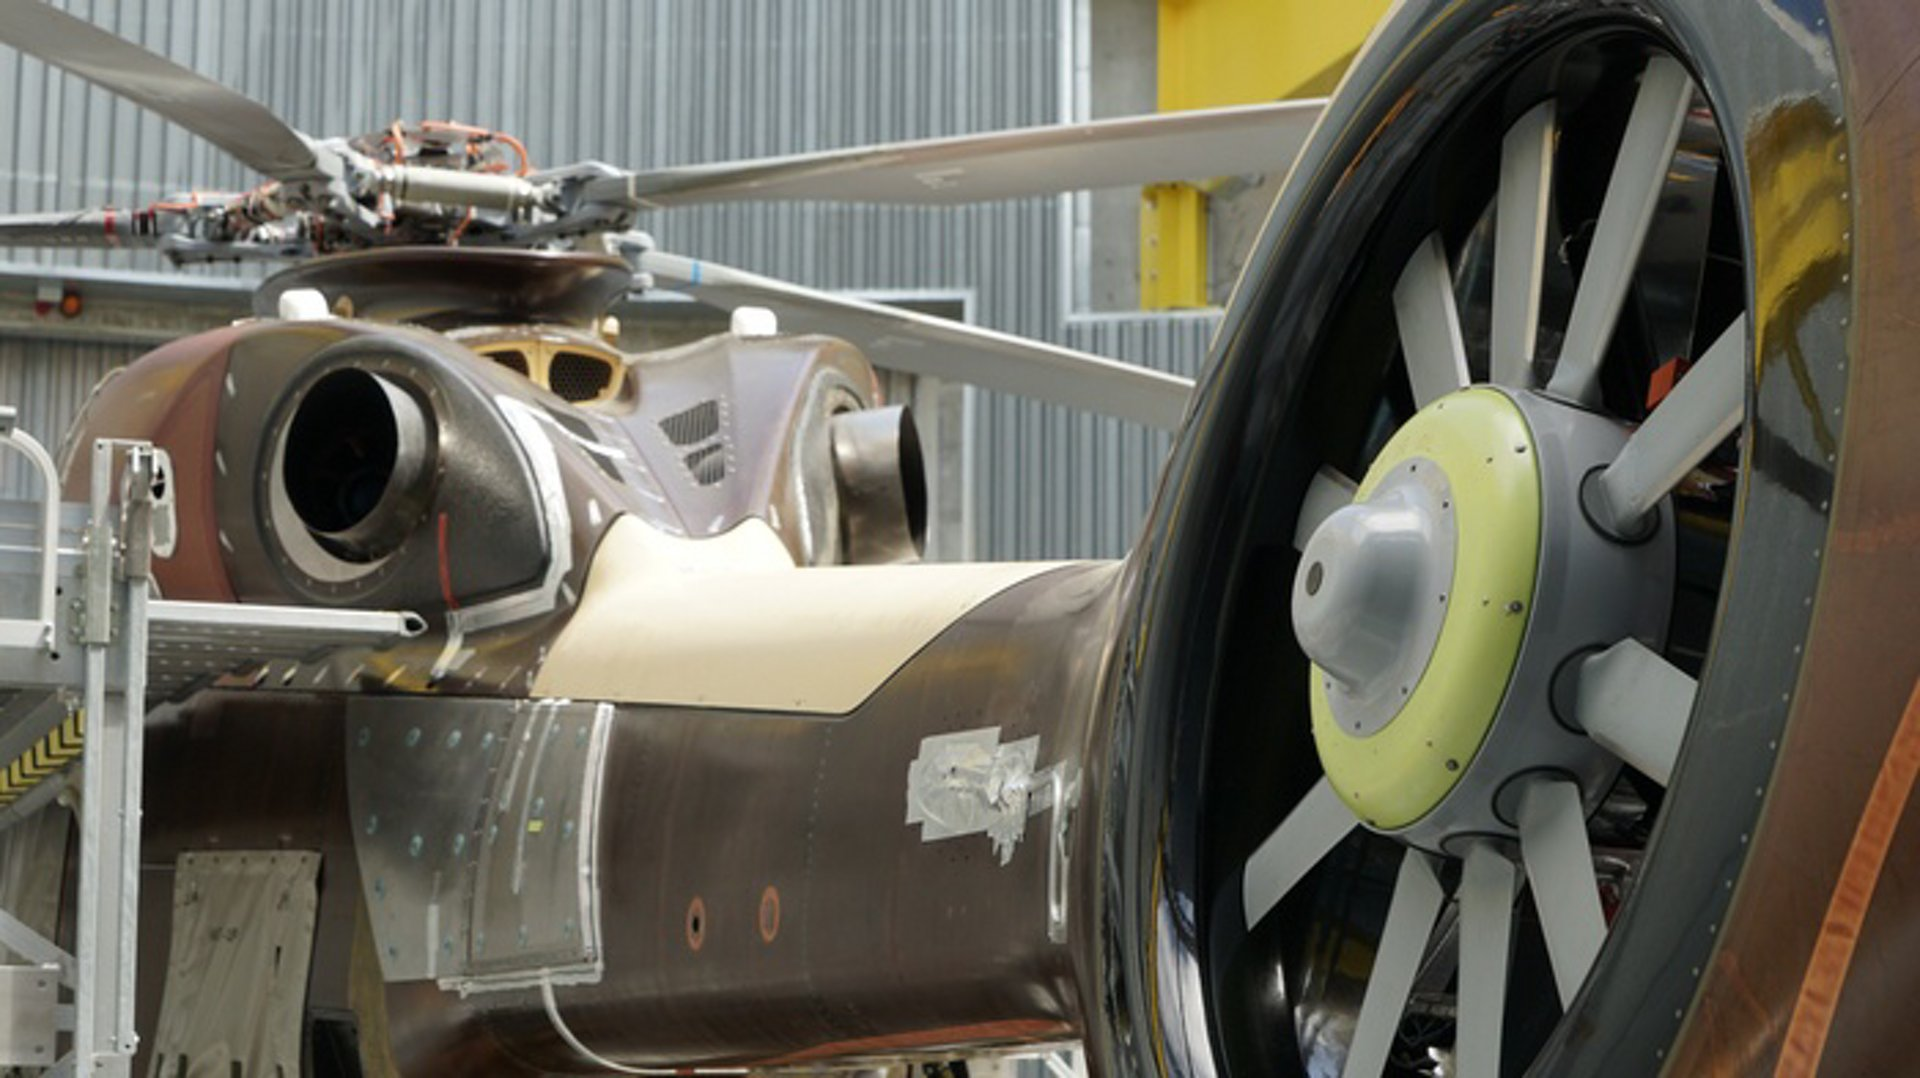 DHC0: New dynamic testing method brings mature helicopters to market quickly